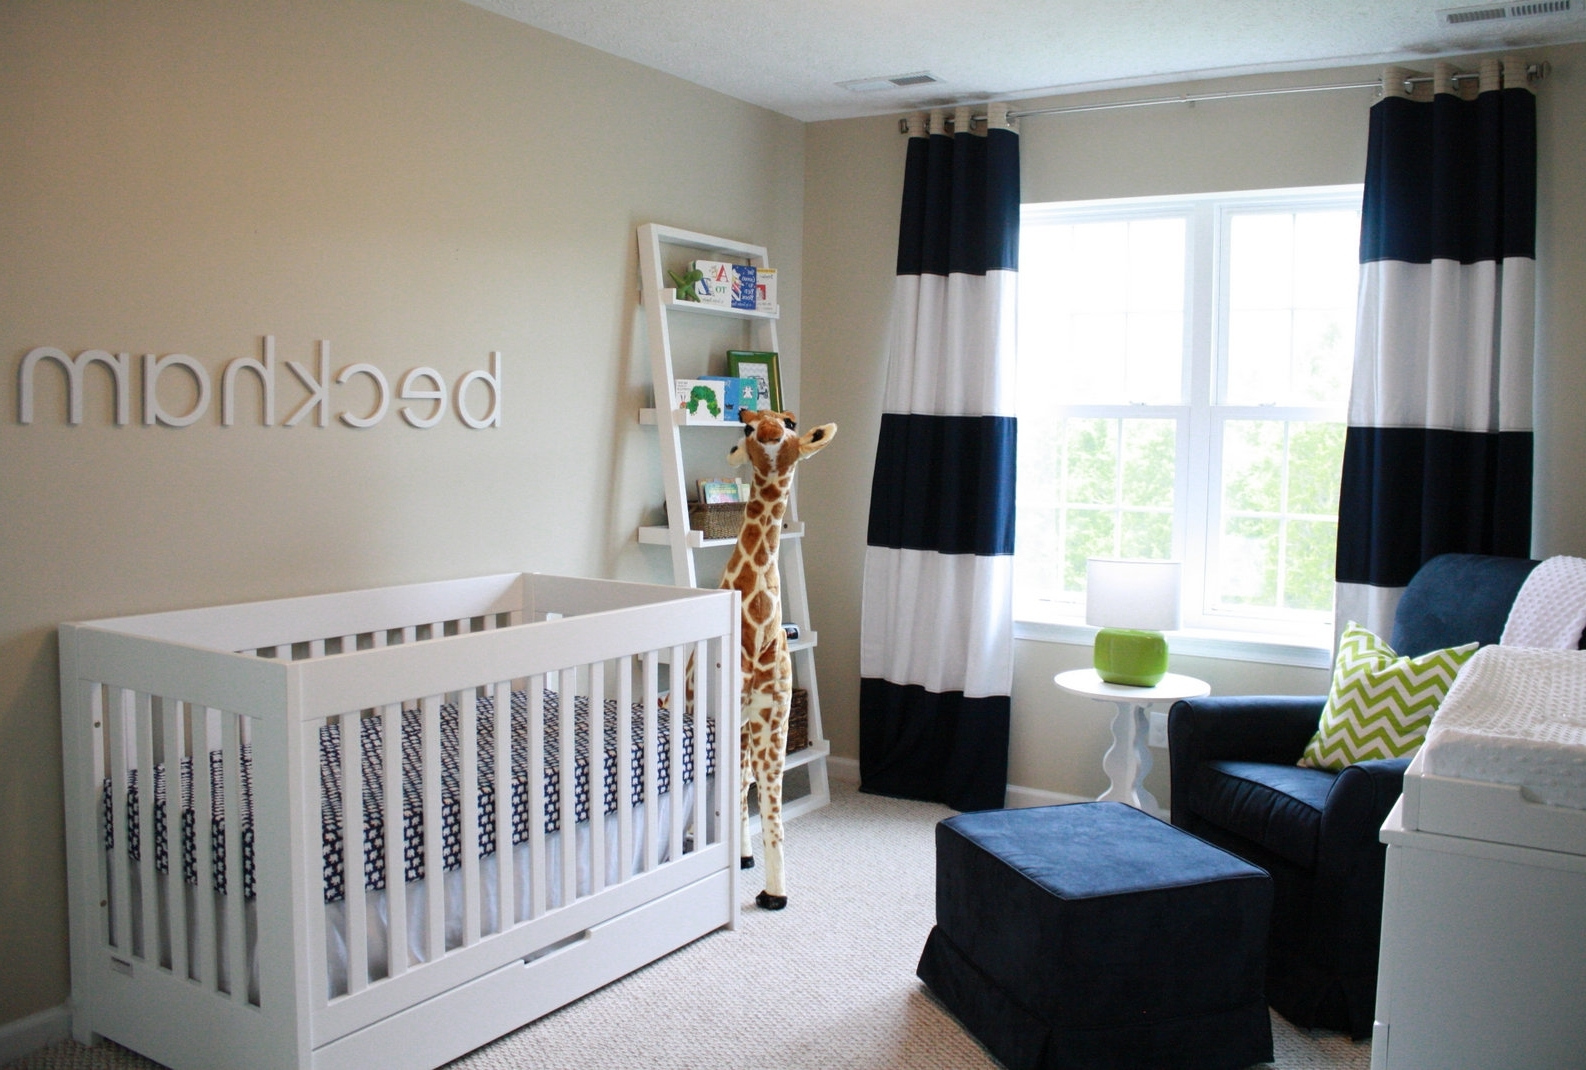 Gorgeous interior design ideas for baby rooms mojidelano com for Room design themes